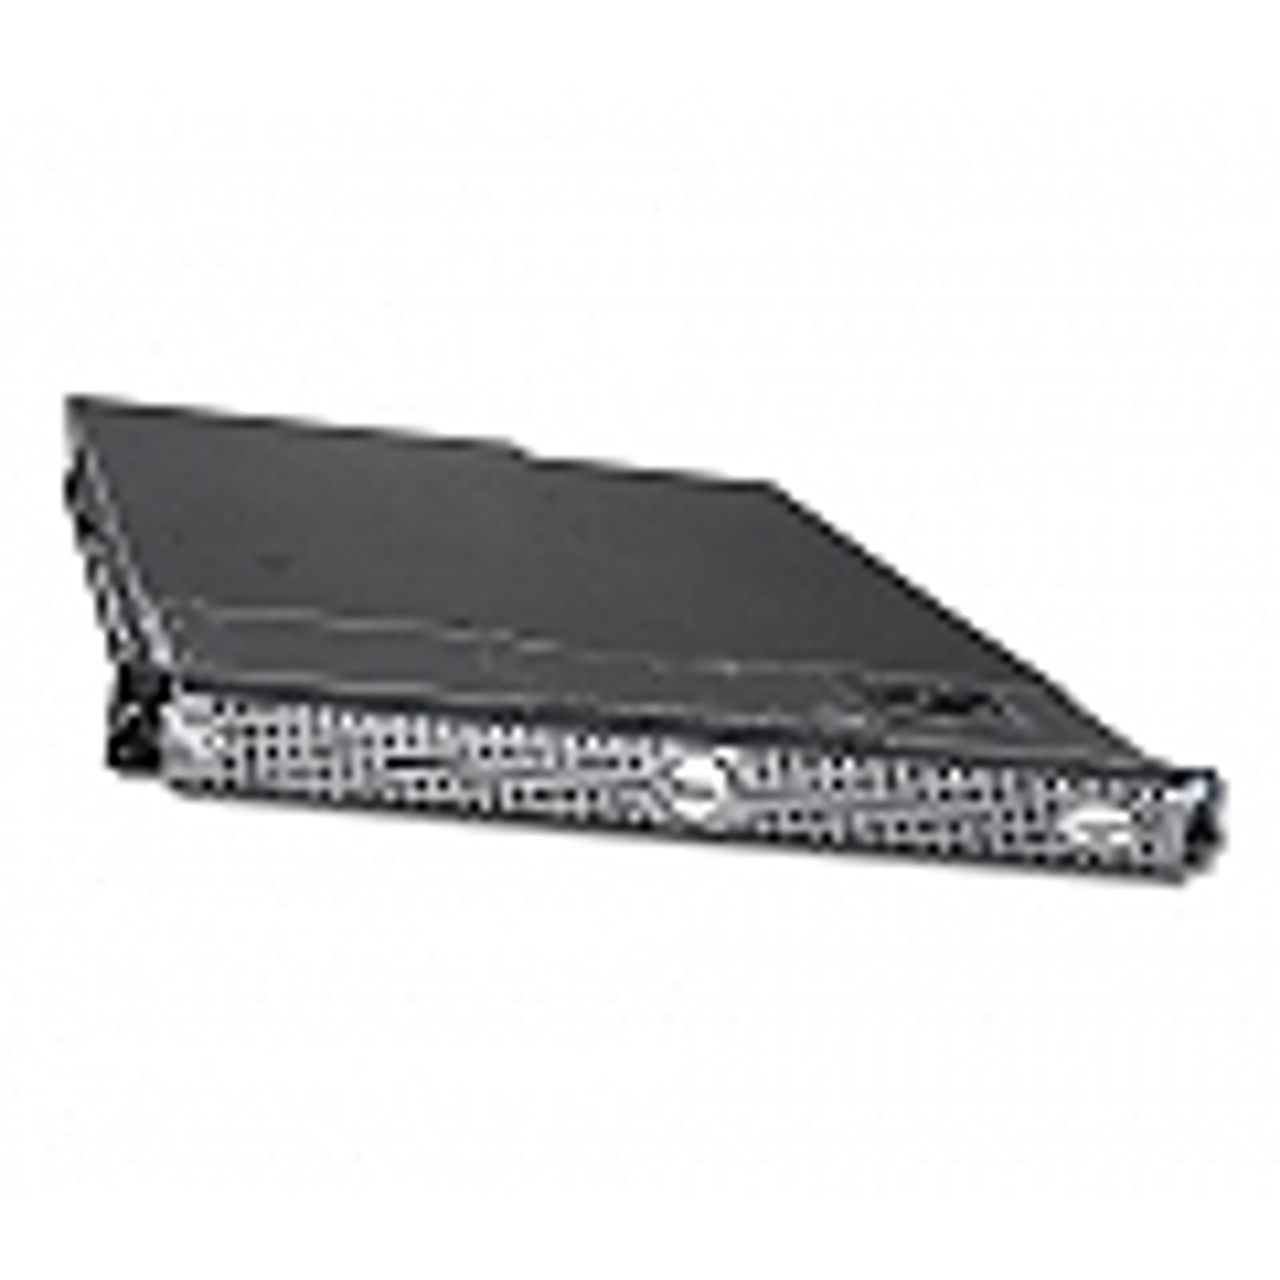 Dell PowerEdge 1850 Servers